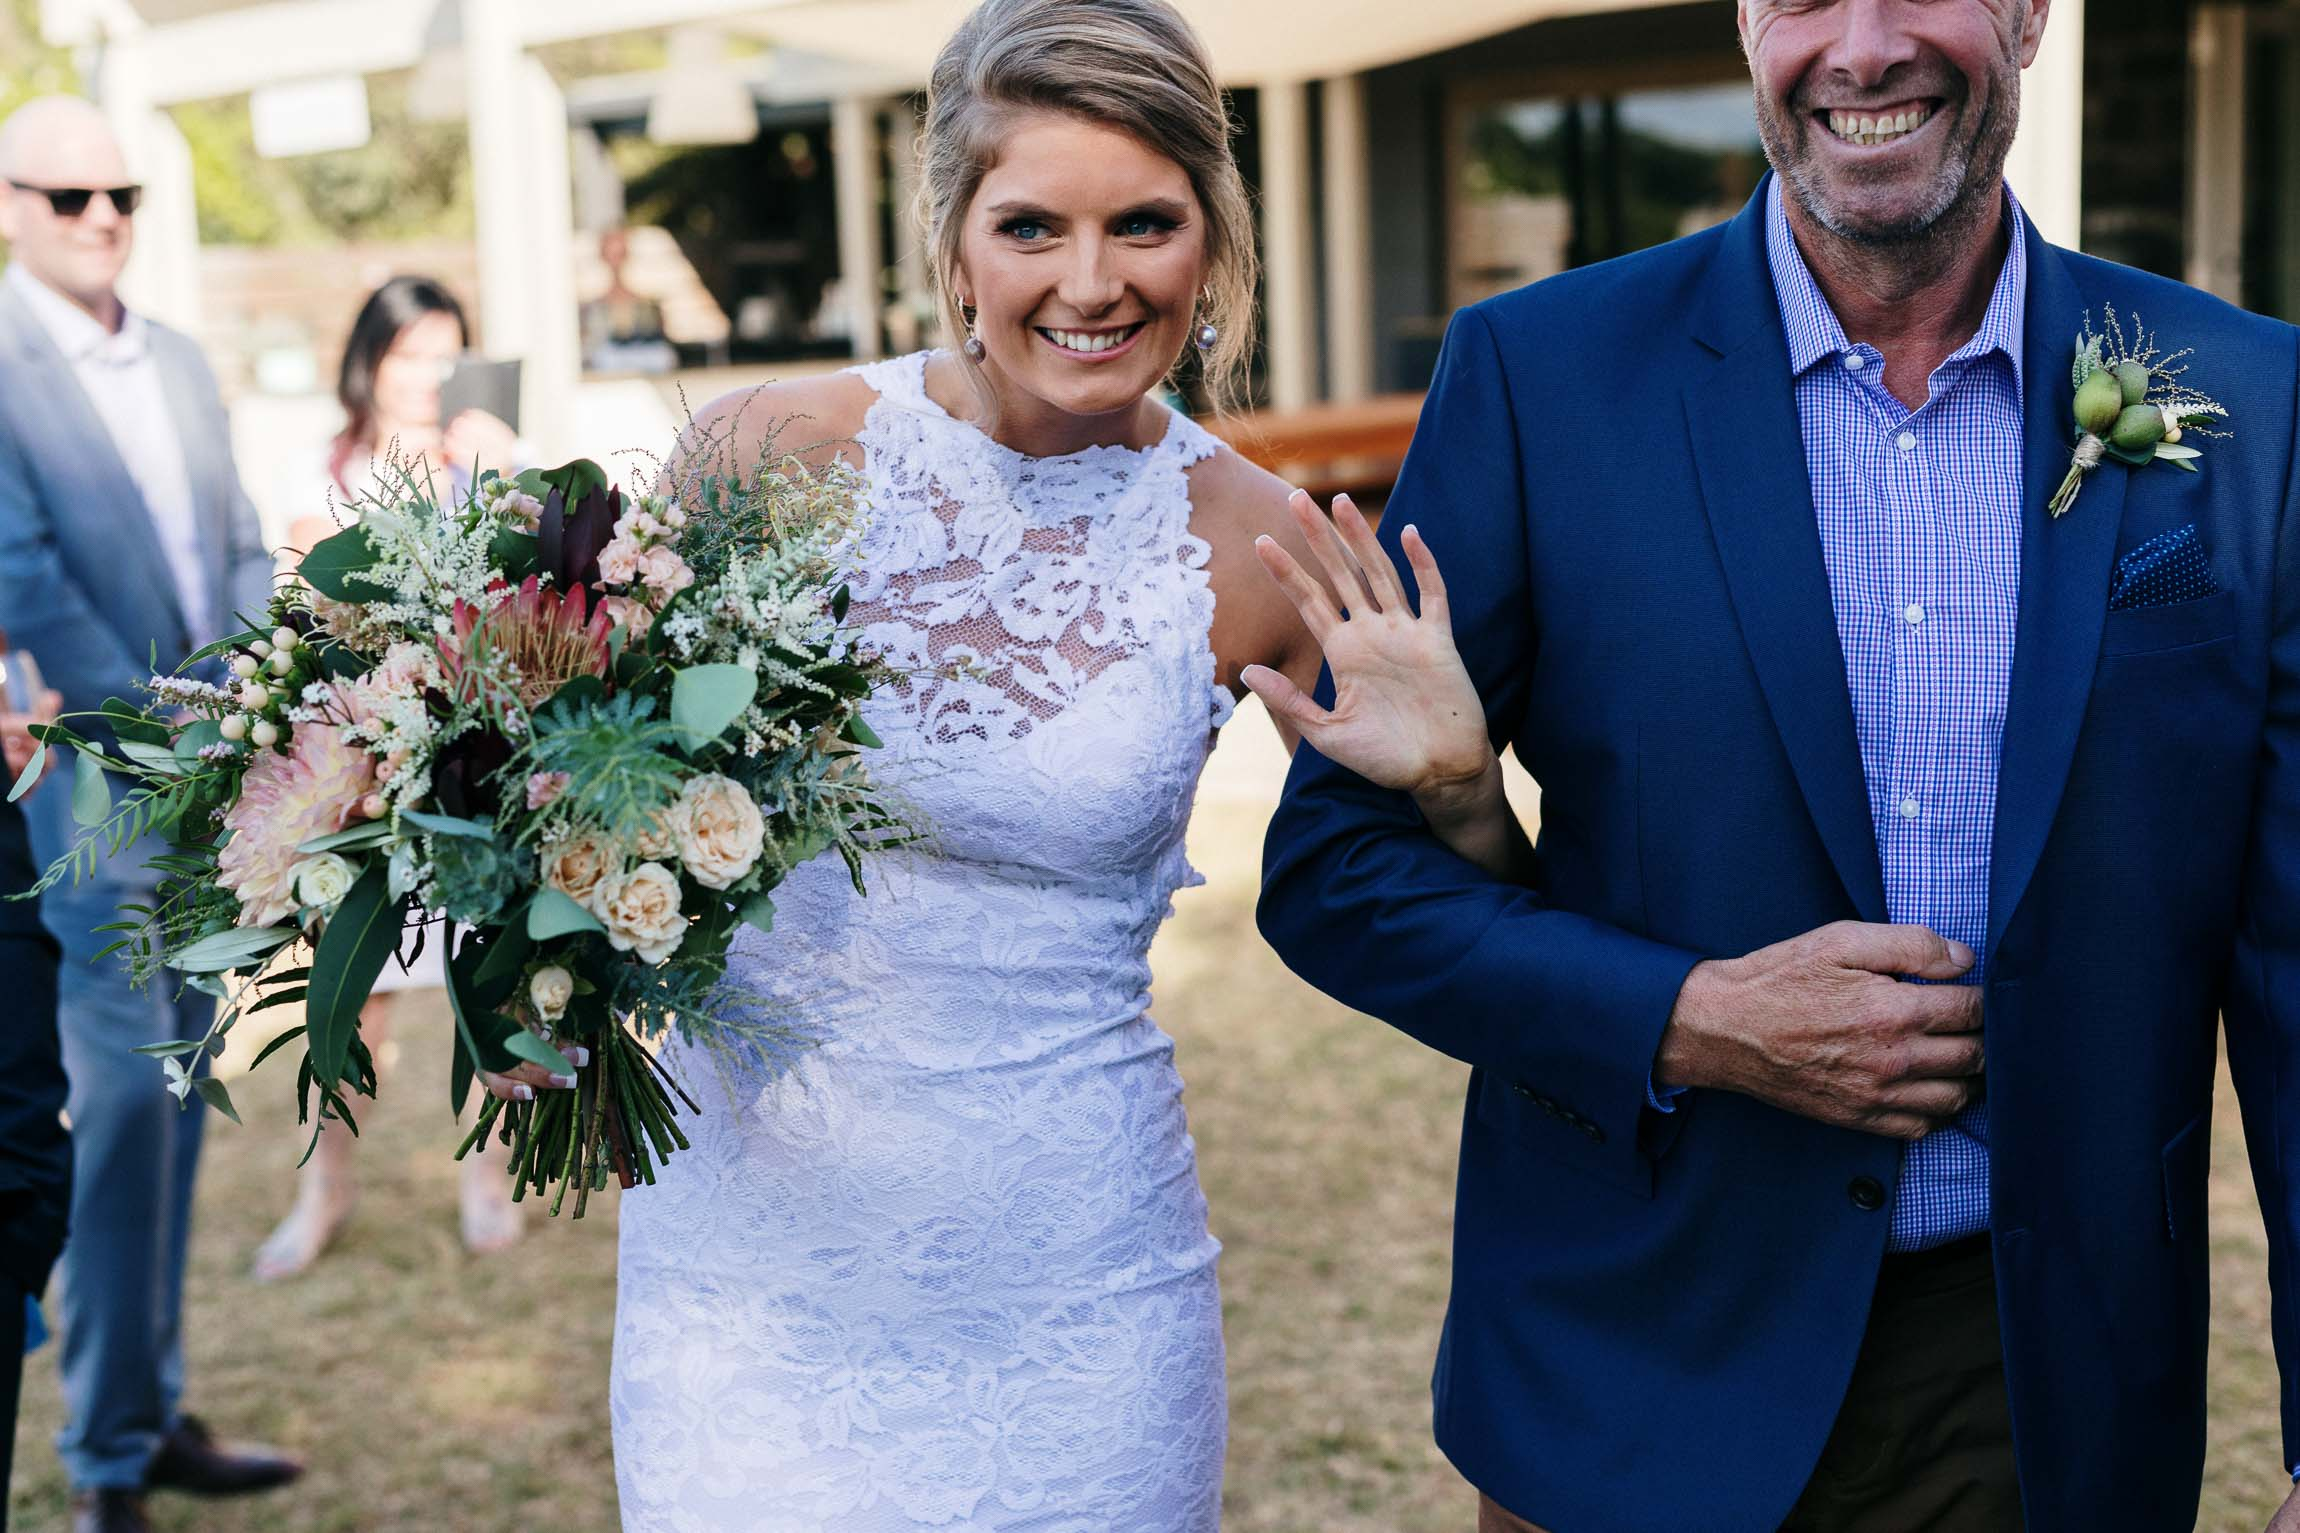 lachlan-scallion-melbourne-victoria-austrlia-mornington-peninsula-candid-relaxed-natural-chilled-wedding-photographyglasshaus-richmond-293.jpg